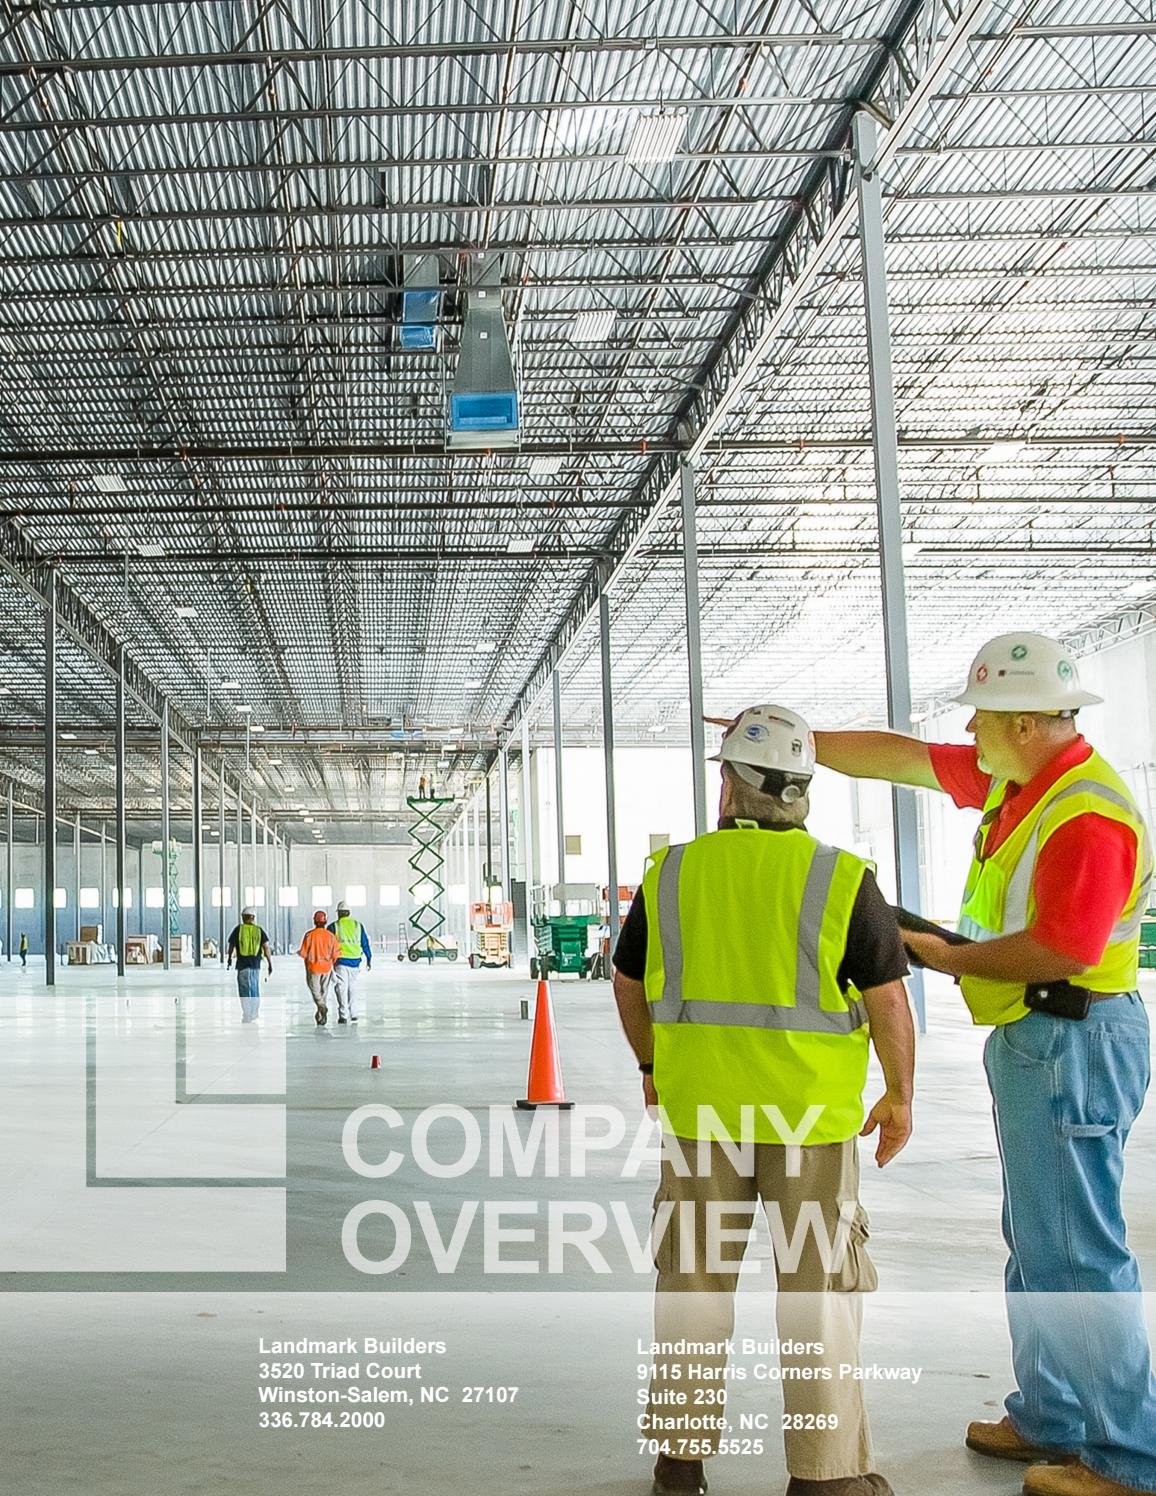 Company Overview By Landmark Builders